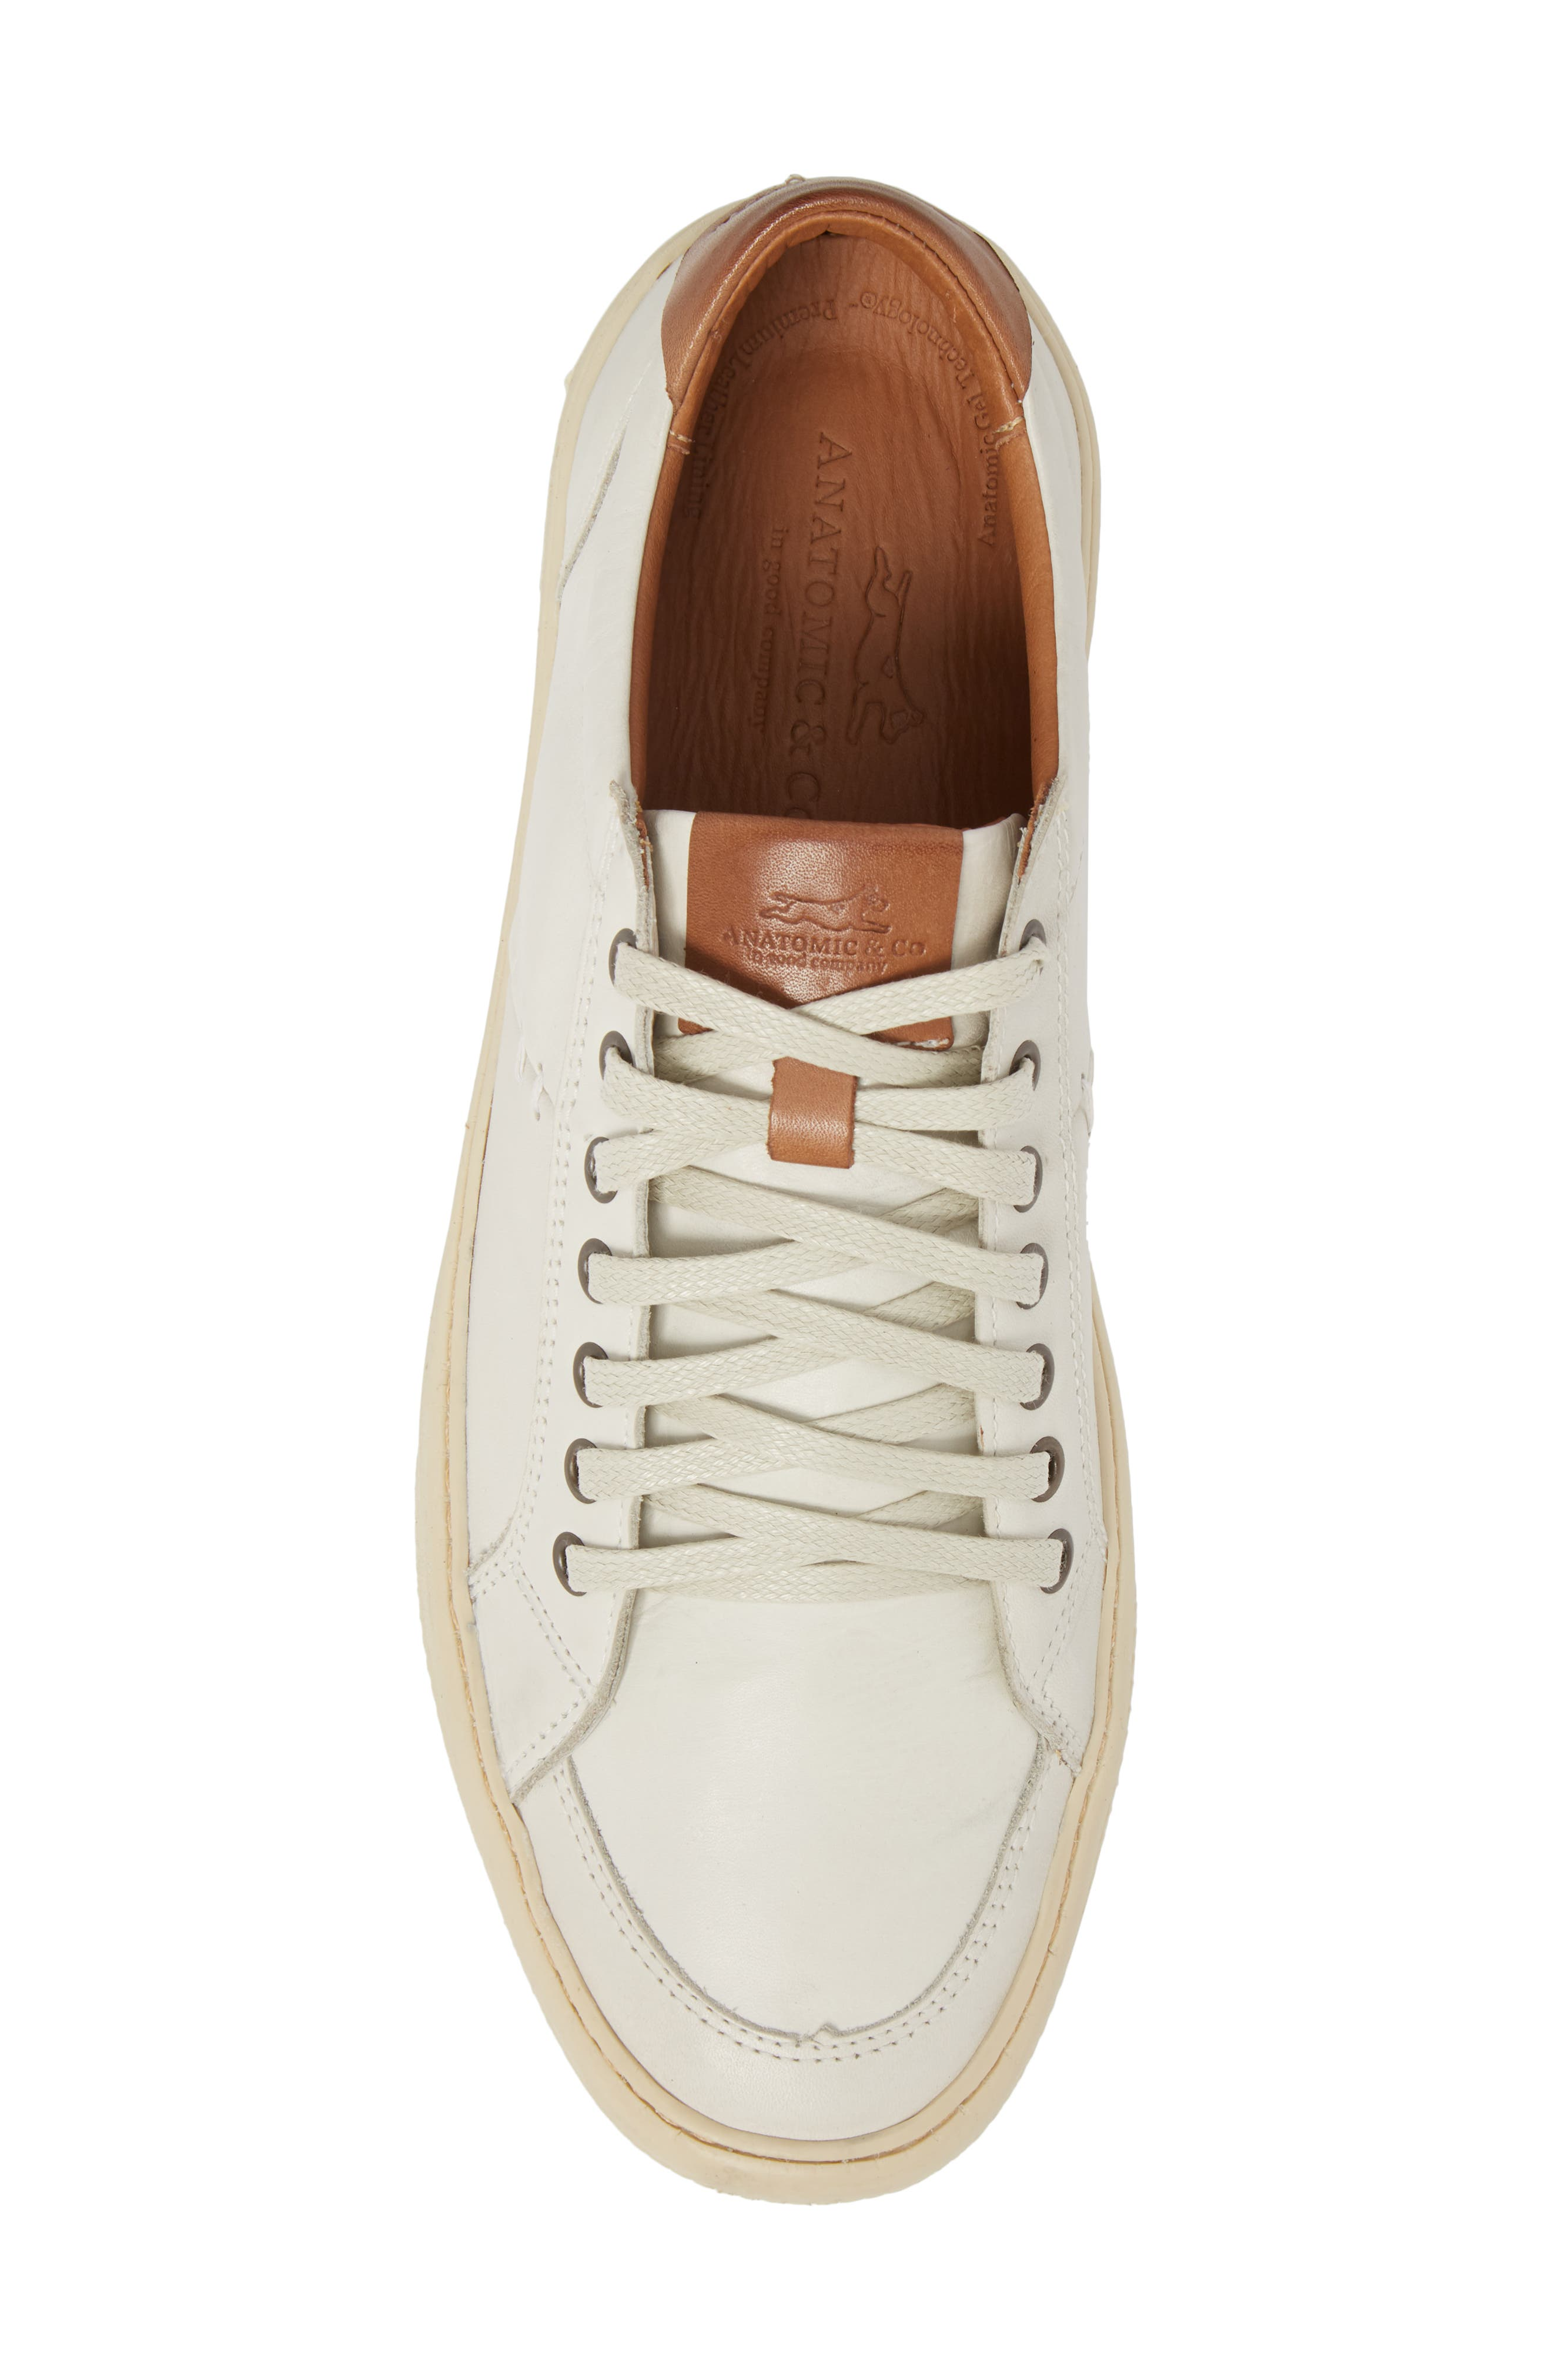 Bilac Low Top Sneaker,                             Alternate thumbnail 5, color,                             Touch Ice/ Bronze Leather